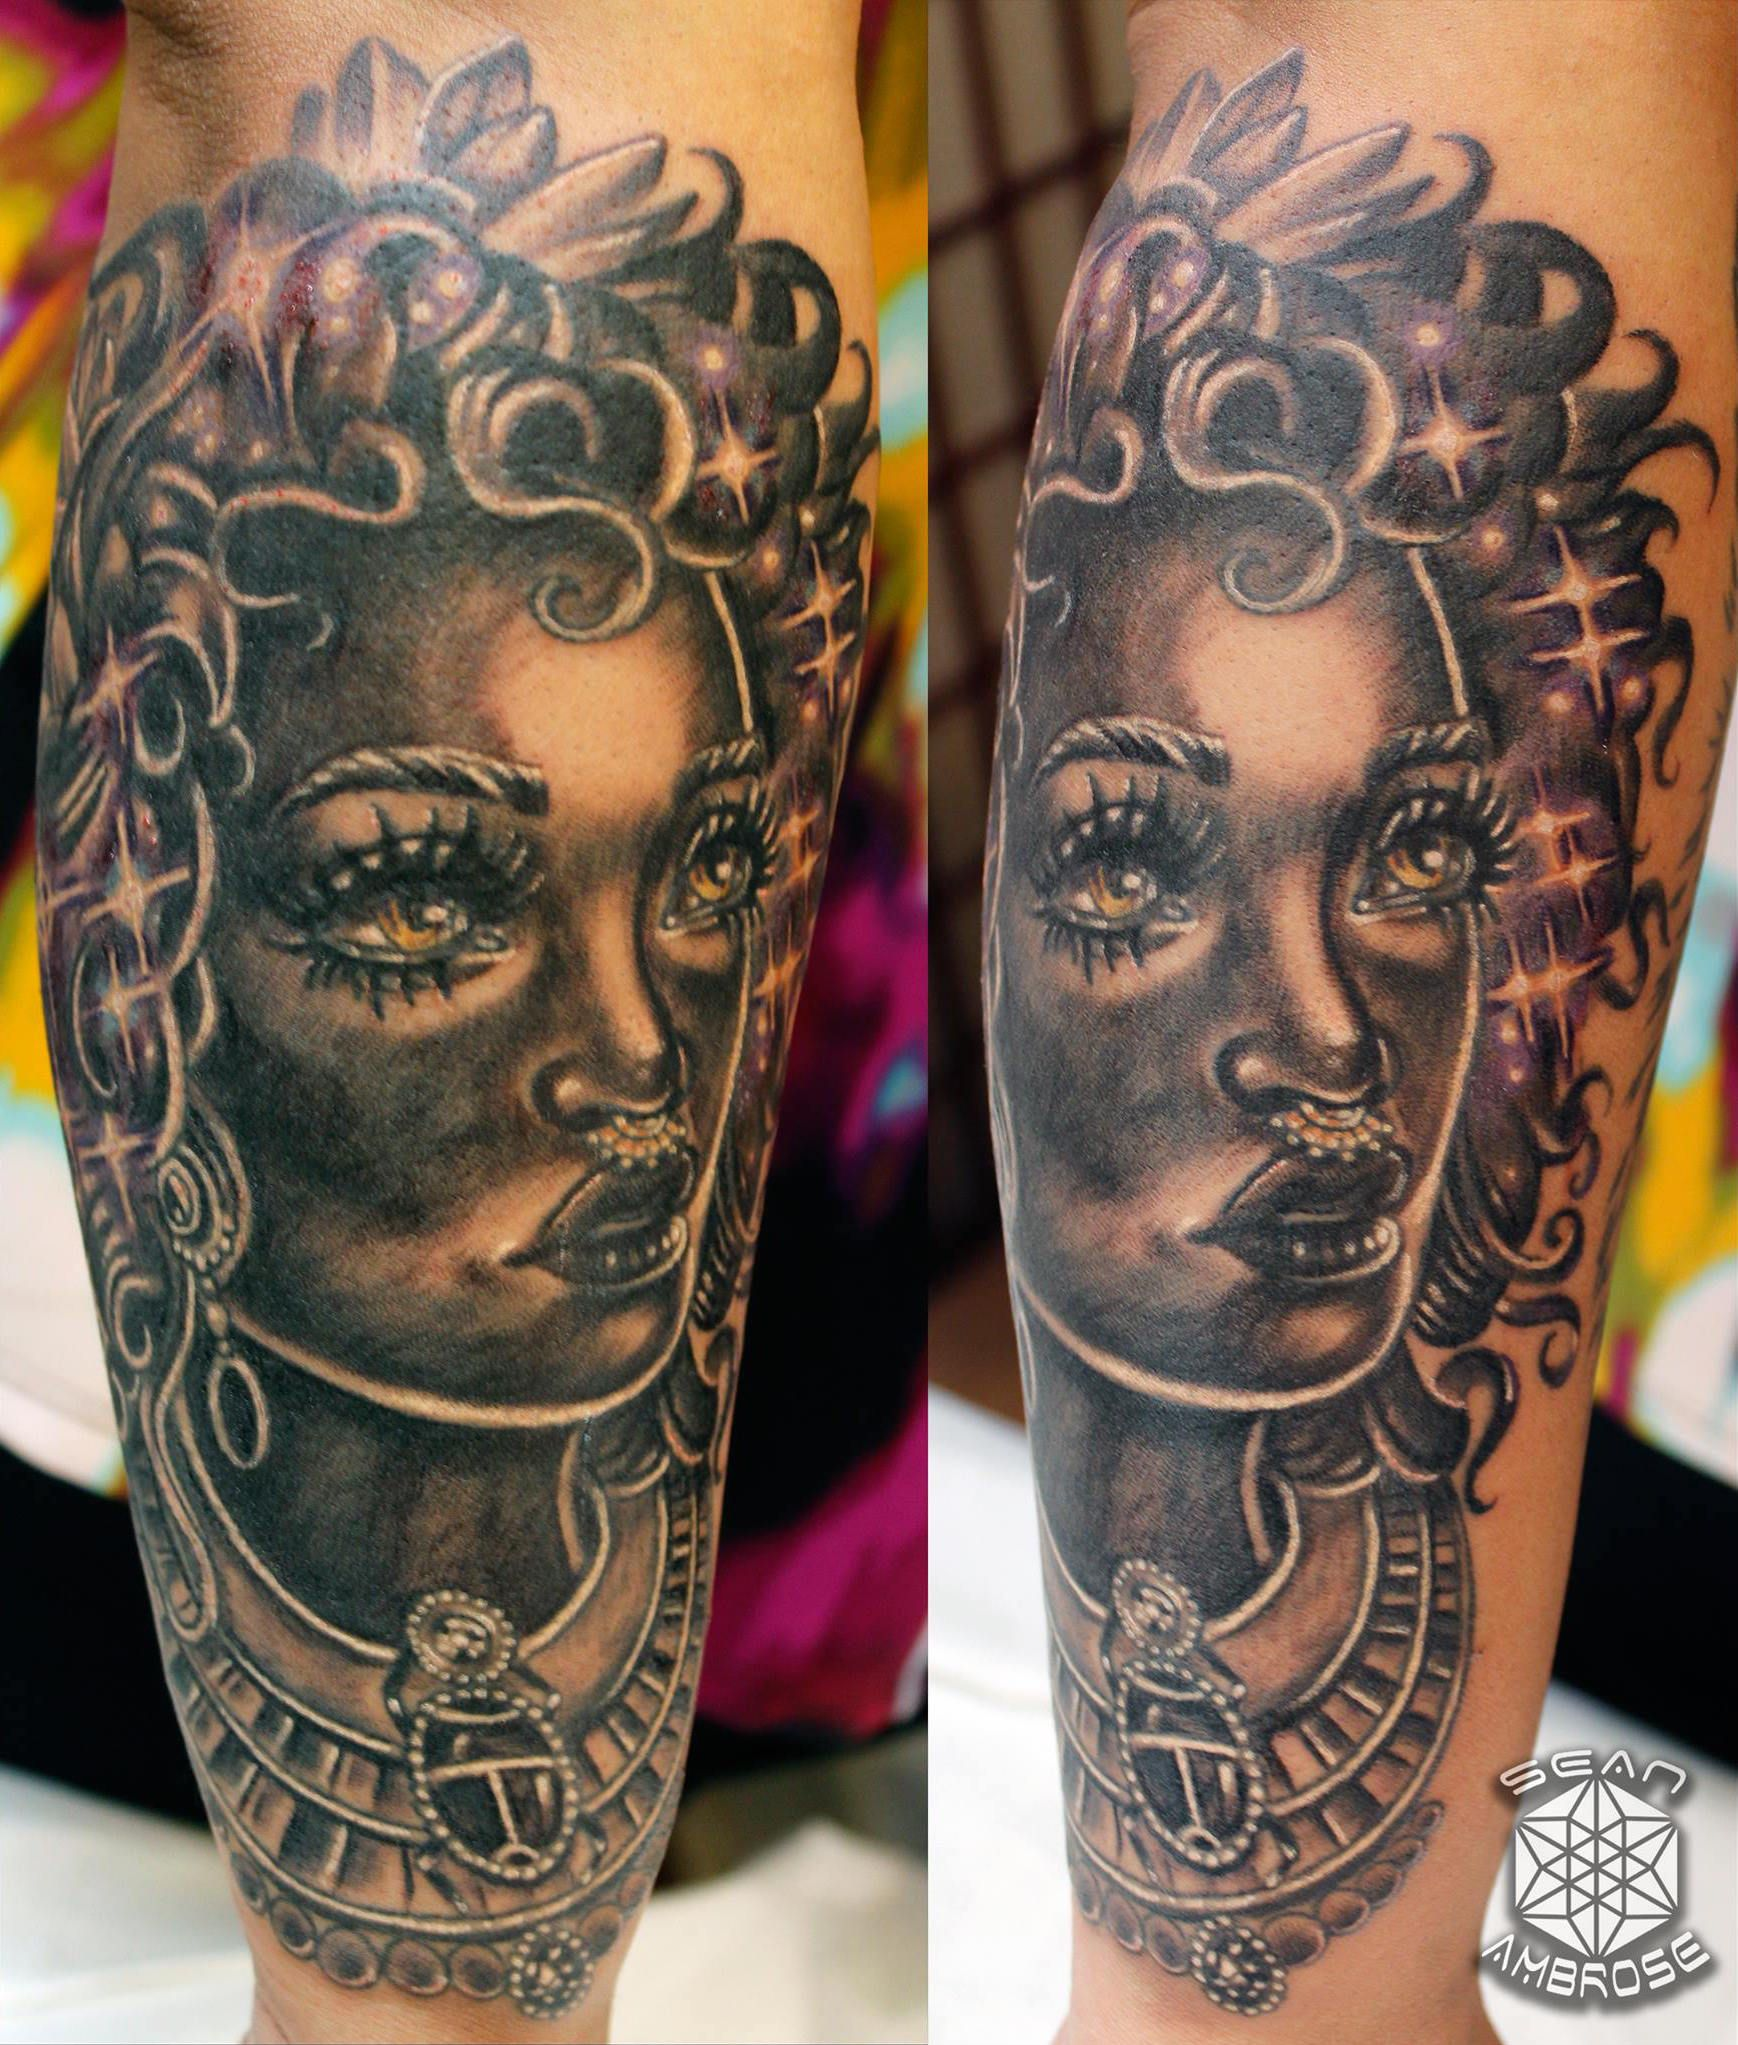 African Space Goddess Tattoo Thanks Noha For Inquiries Ideas And Designs